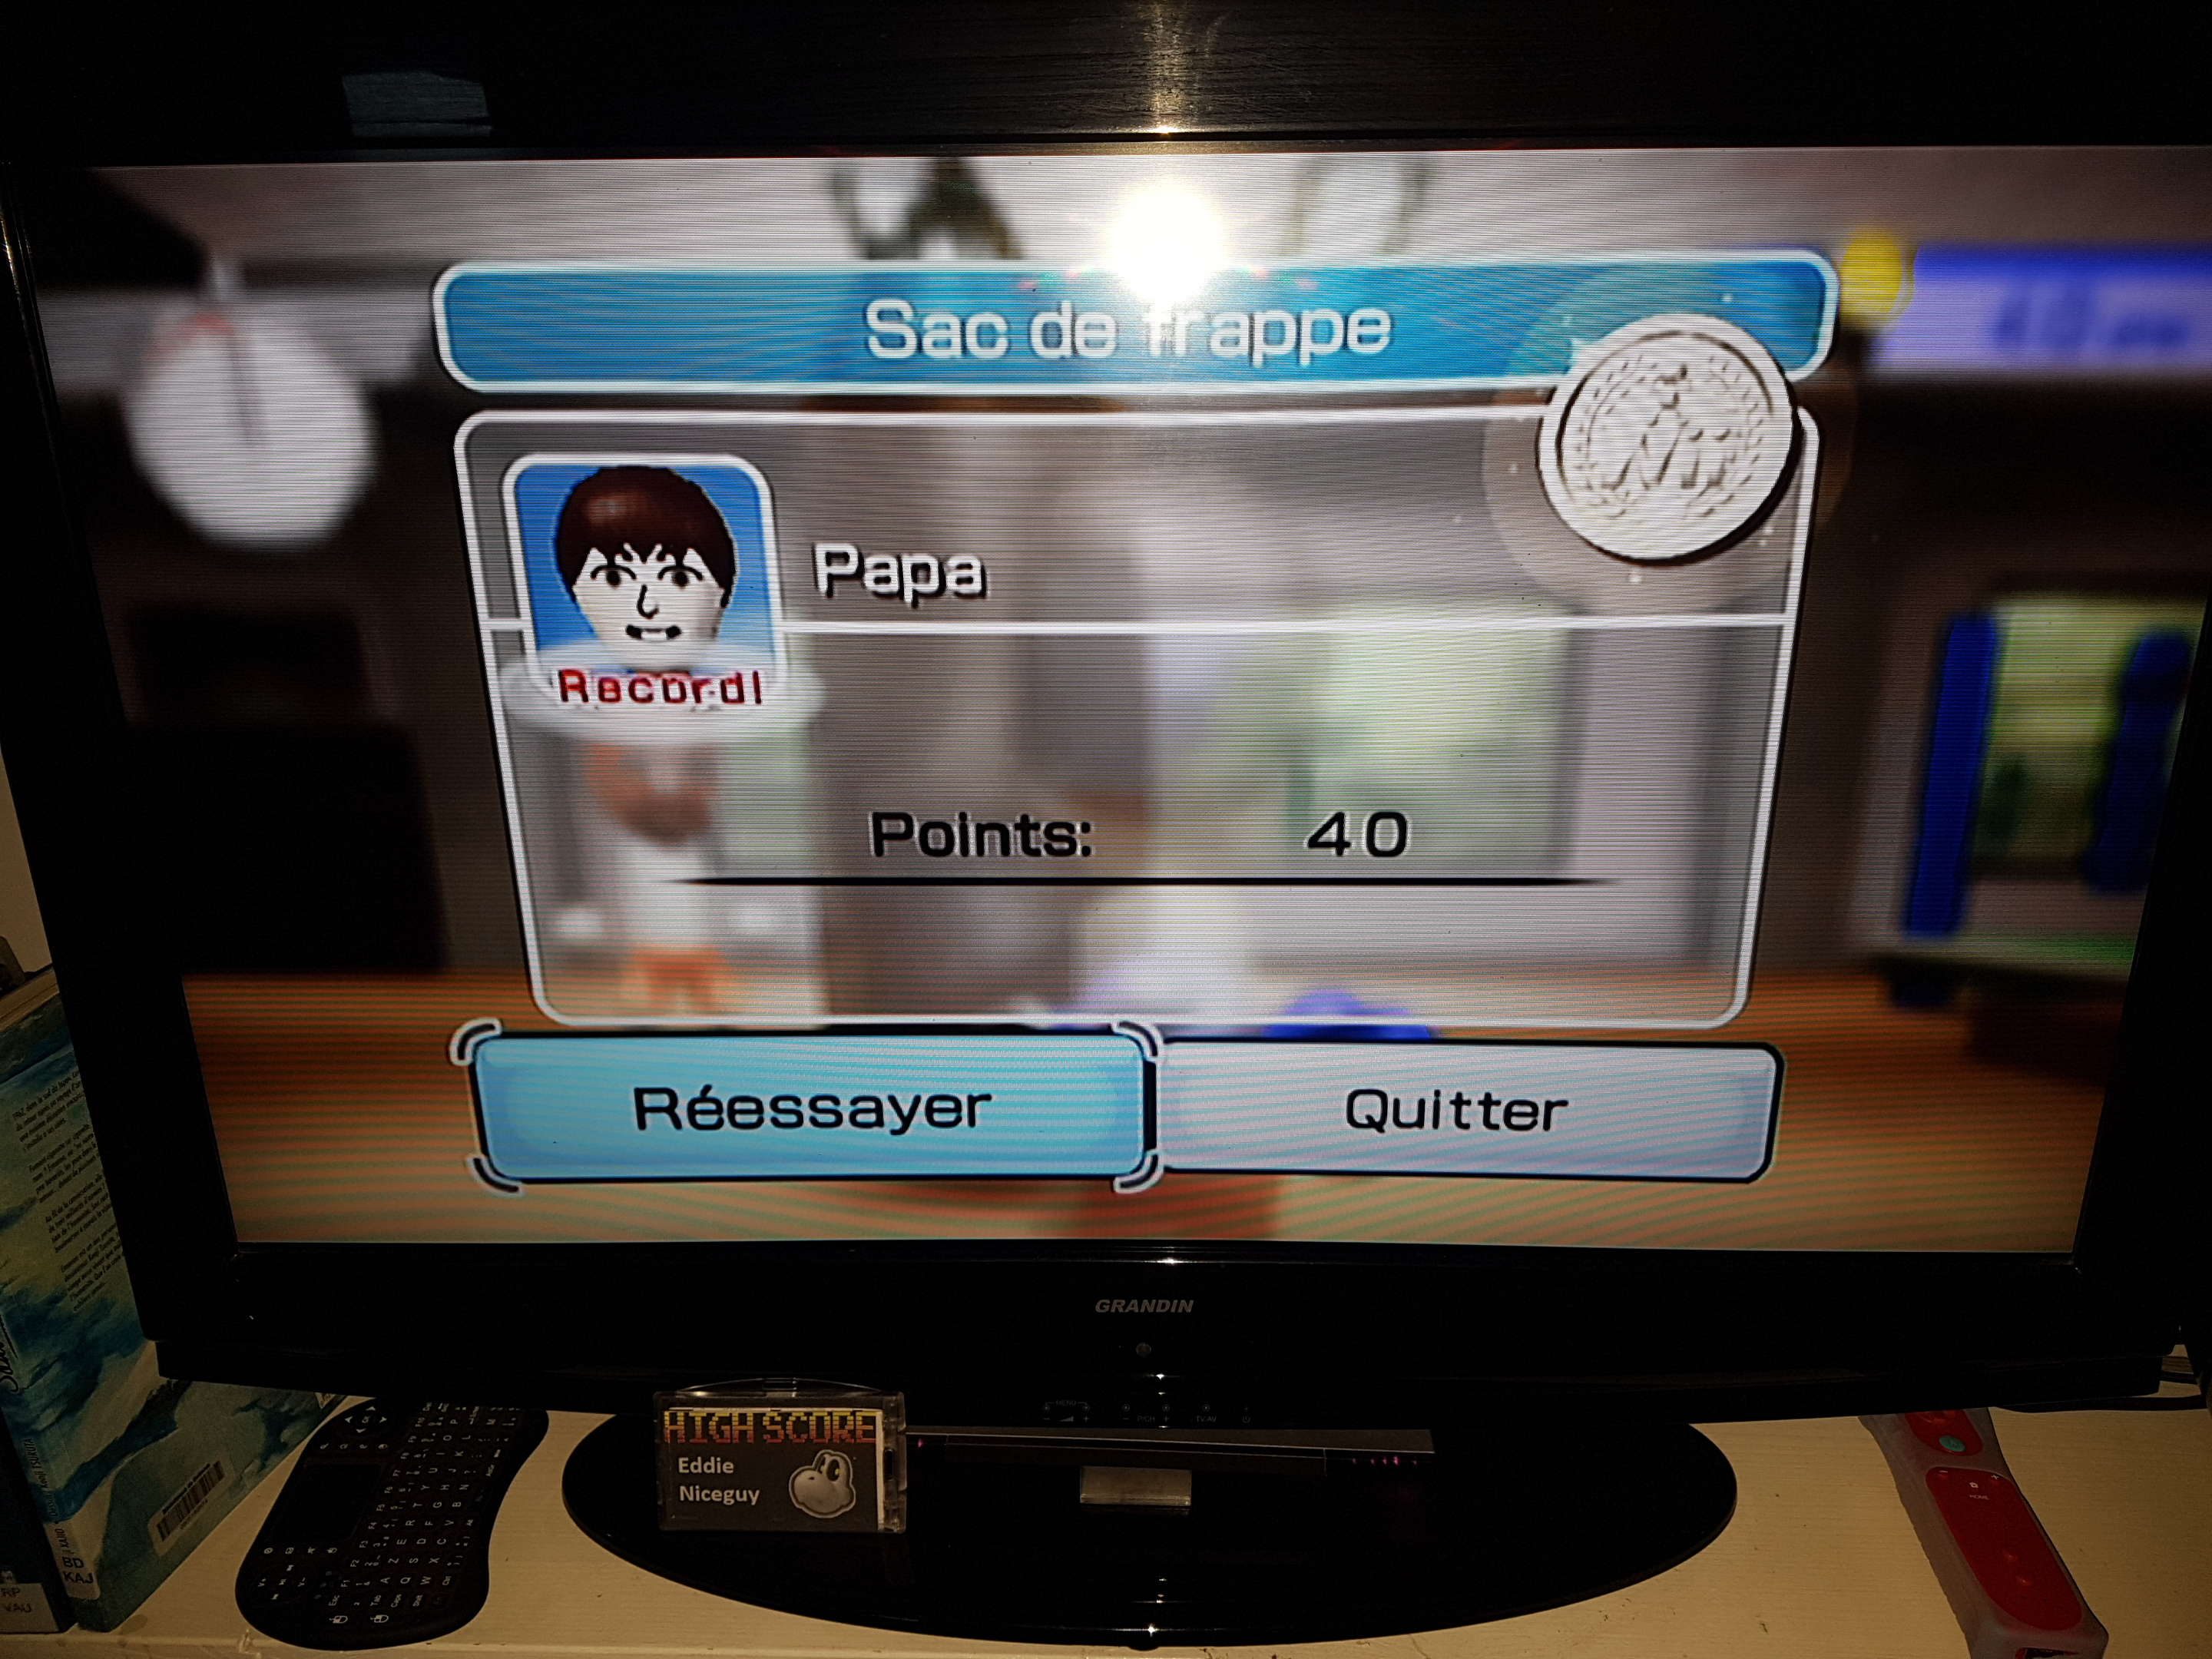 Wii Sports: Boxing [Working the Bag] 40 points